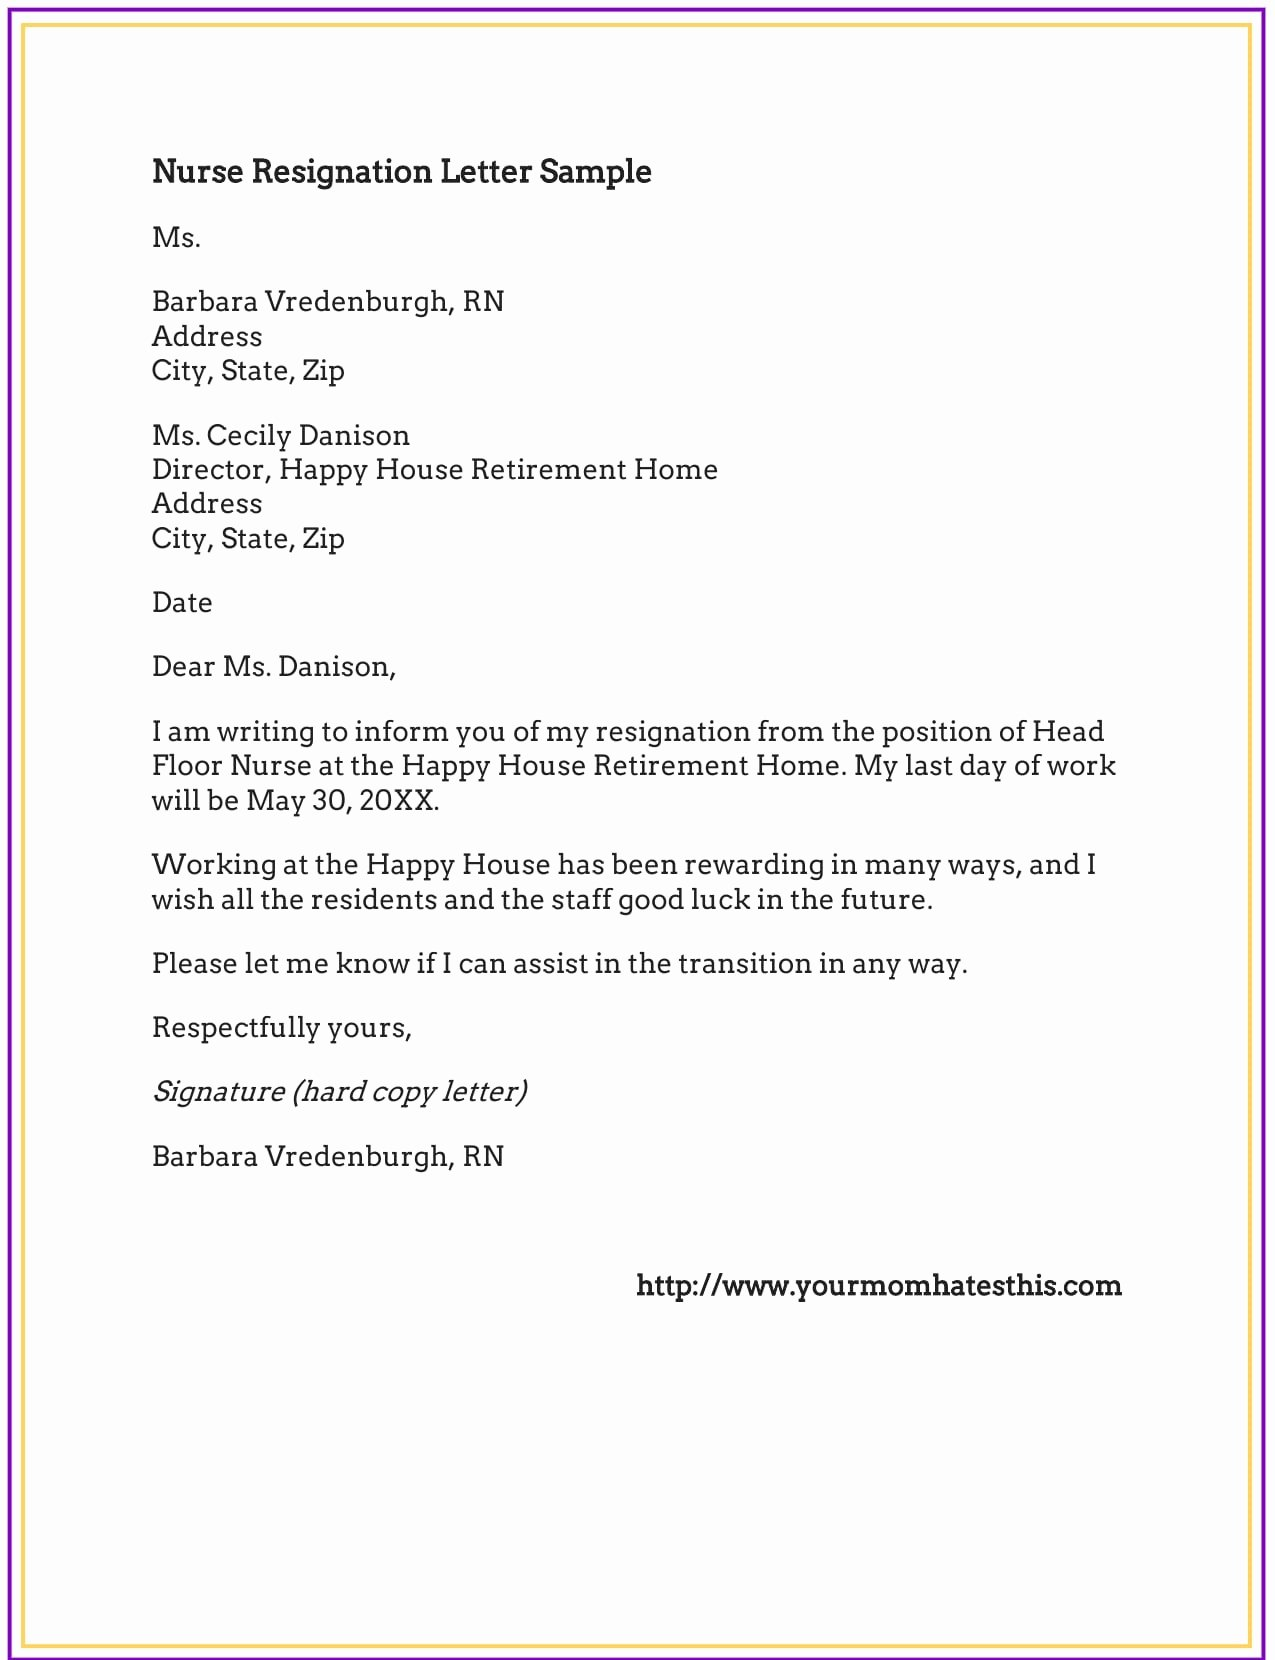 Letter Of Resignation Nursing Inspirational Dos and Don'ts for A Resignation Letter